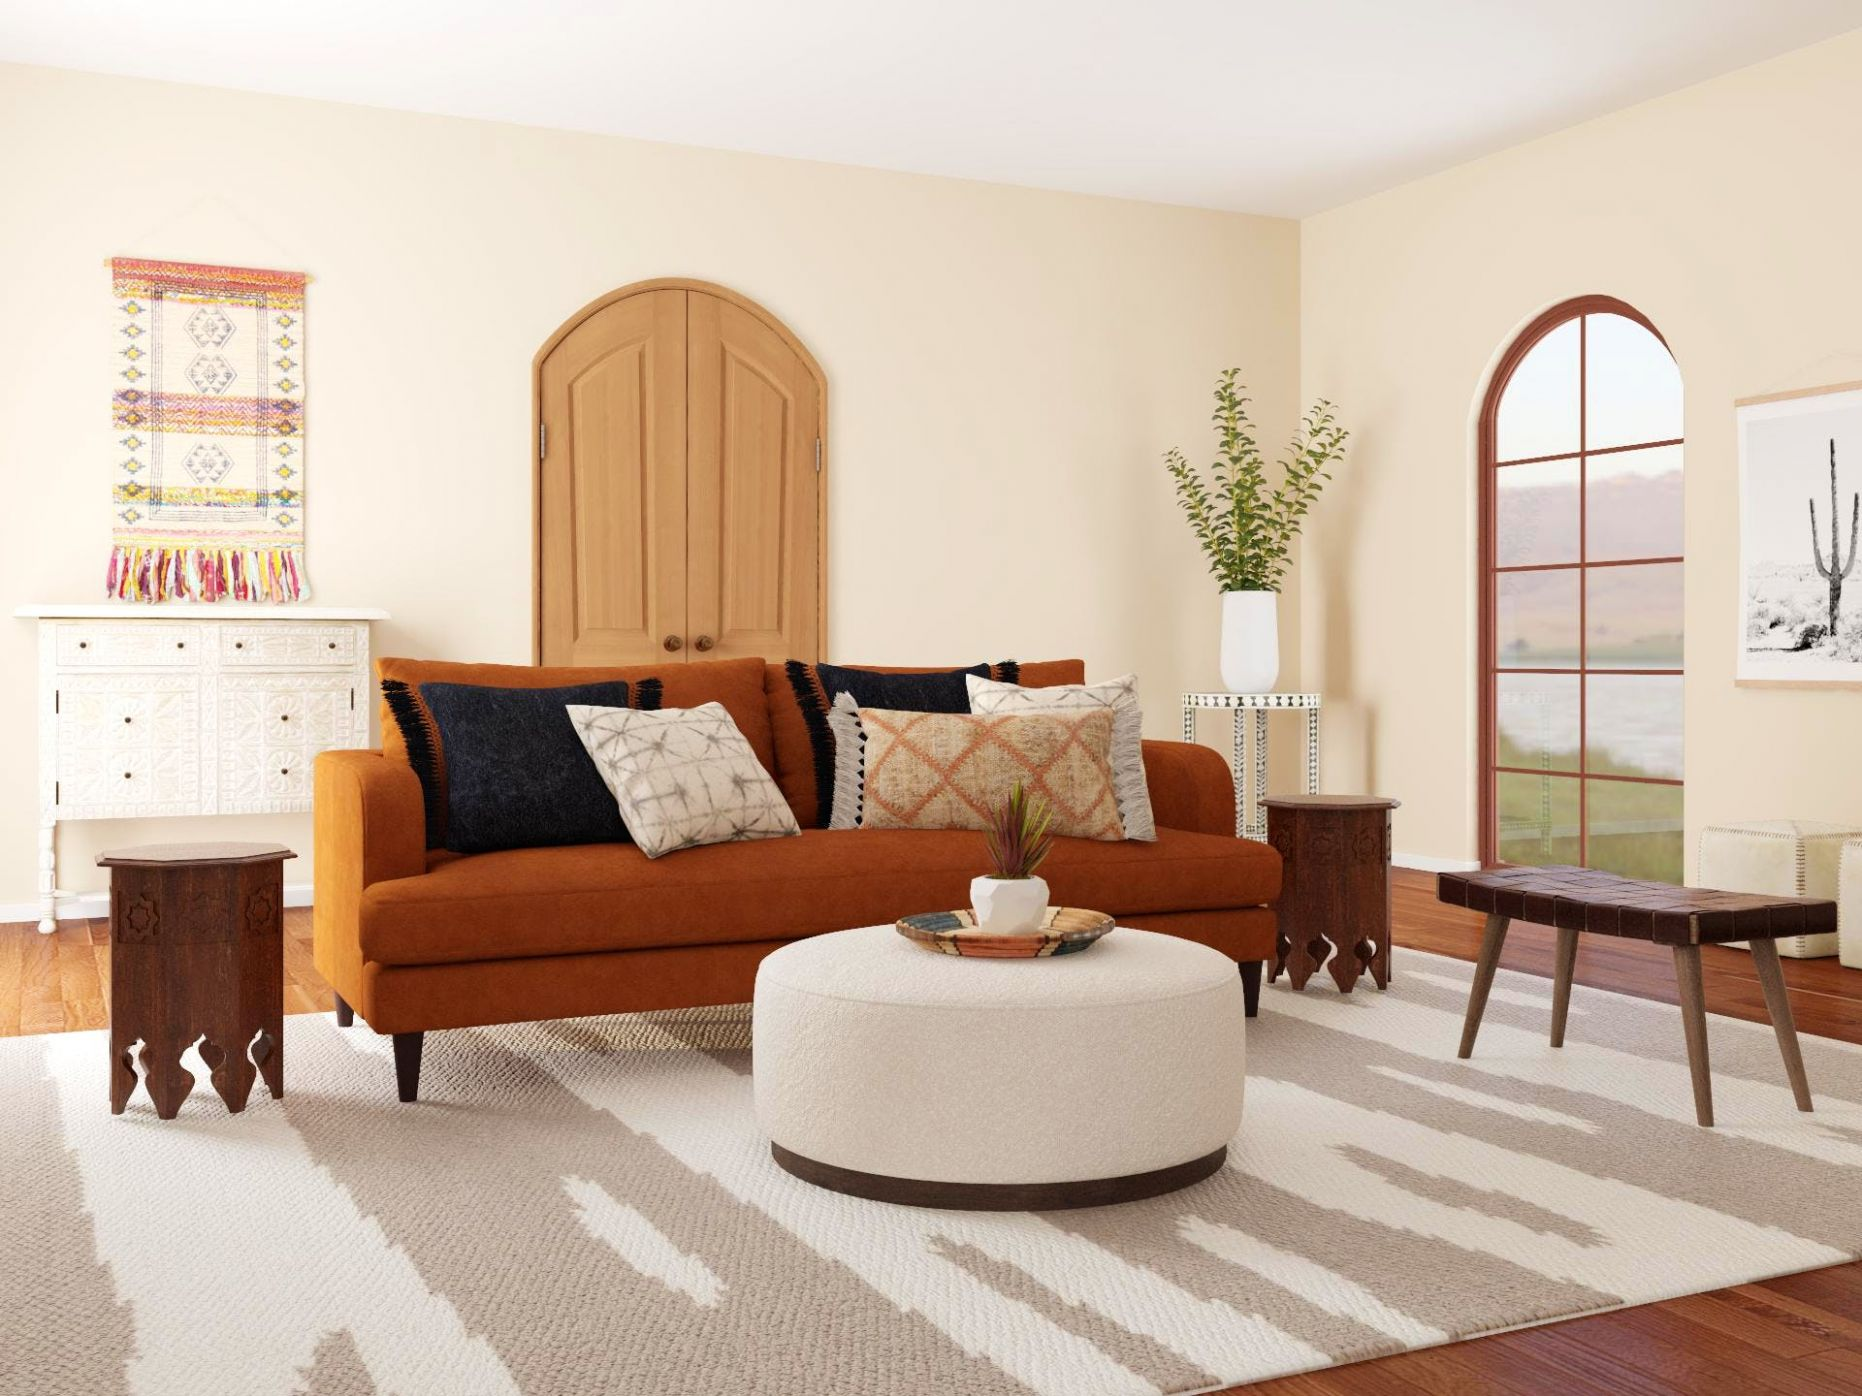 Earth Tone Color Scheme Design Ideas and Styles from Modsy Designers - living room ideas earth tones